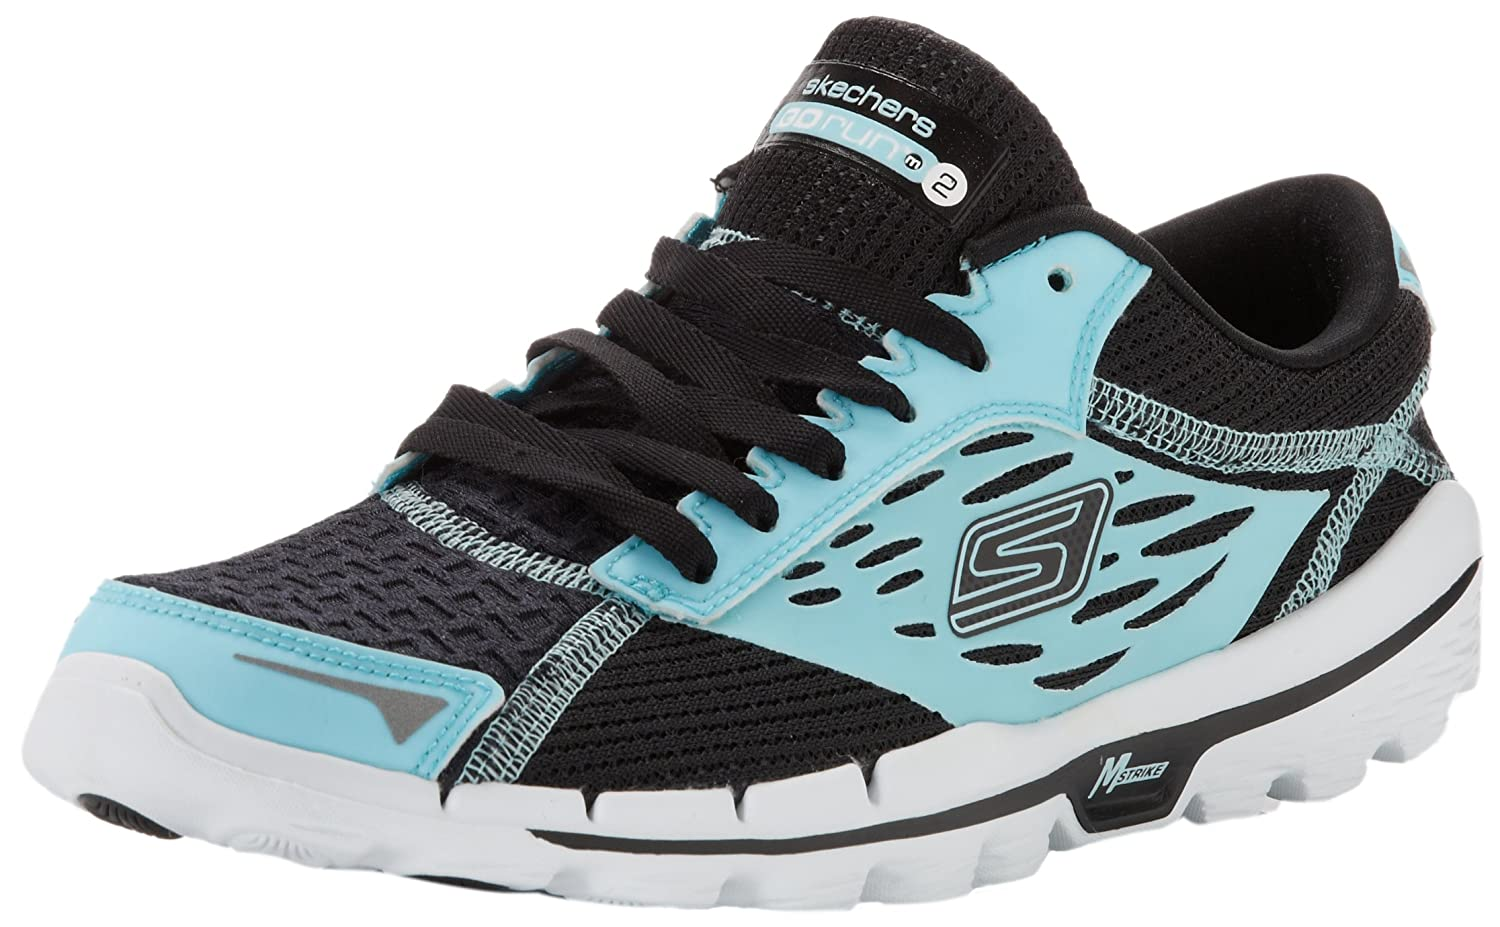 Amazon.com: Skechers Performance Men s go Run Ride 2 Nite ...